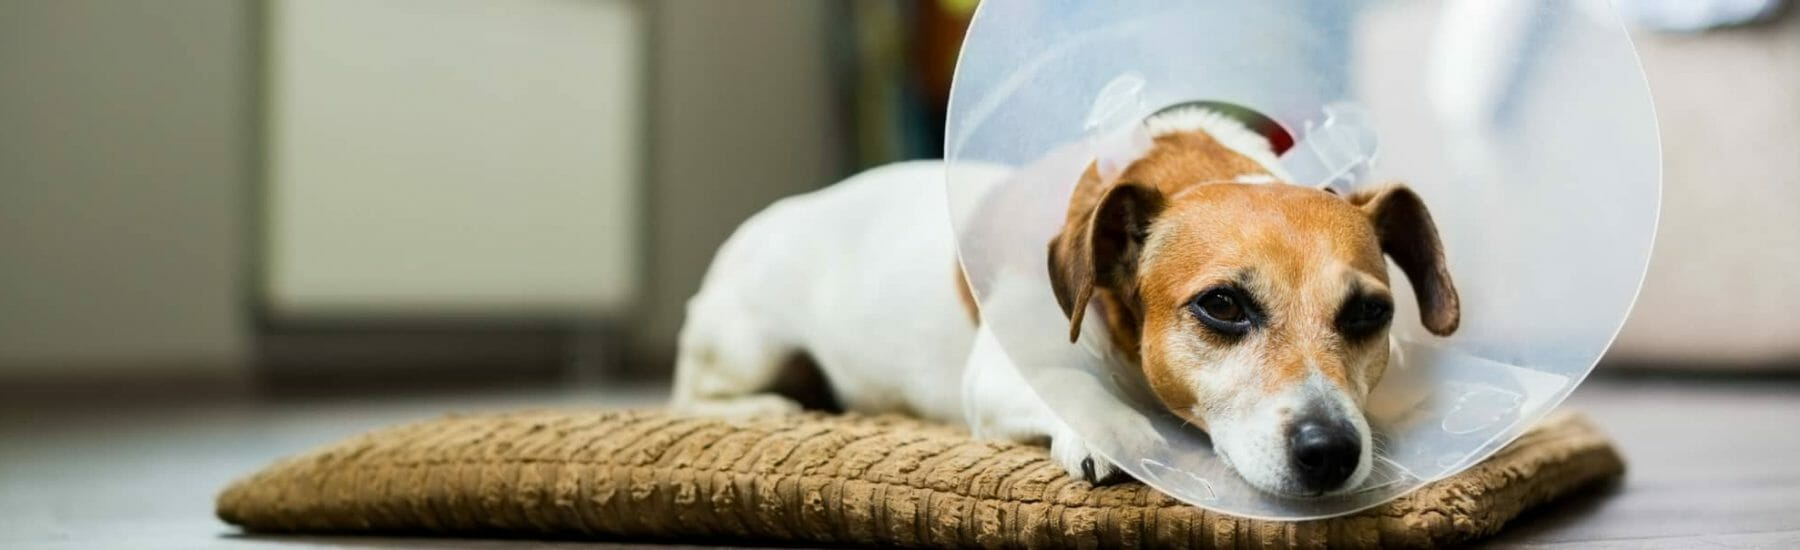 A small Jack Russell puppy in a cone.